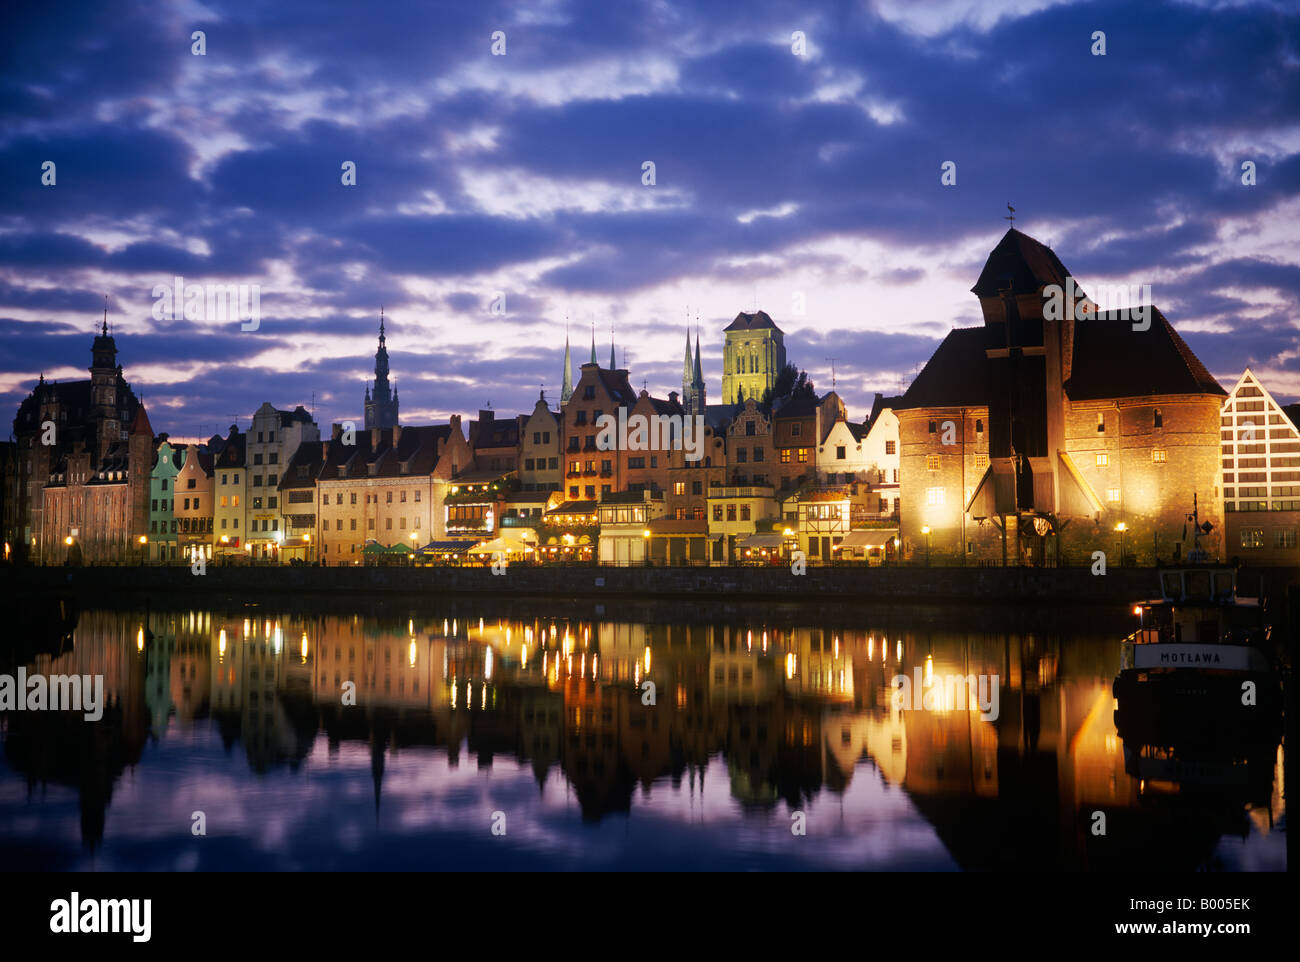 """View across the Mottlawa river to the medieval city gate of Gdansk called """"Crane Gate"""" (Krantor) - Poland, Europe. Stock Photo"""